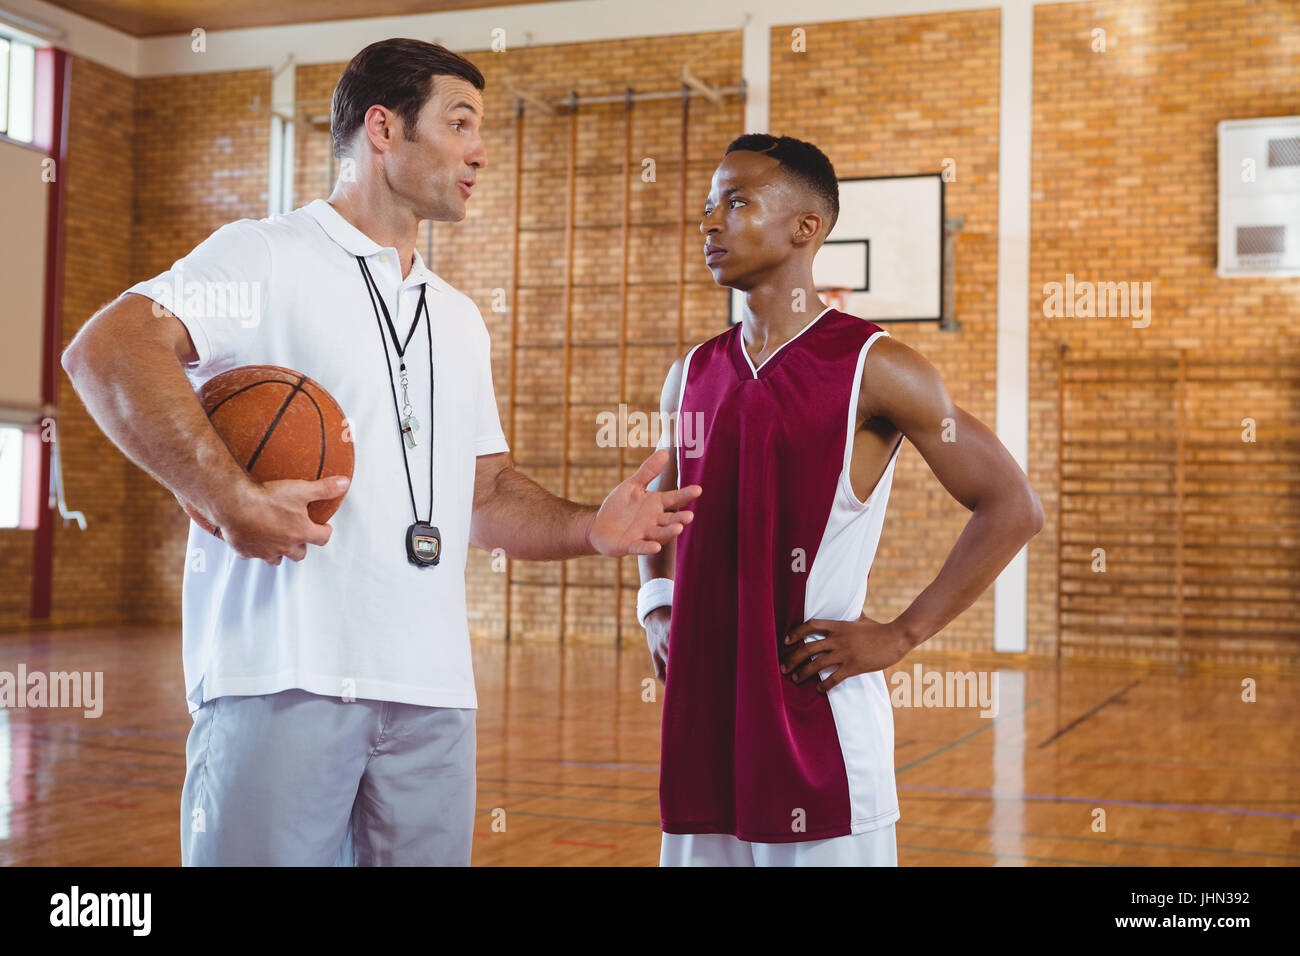 Coach guiding basketball player while standing in court Stock Photo